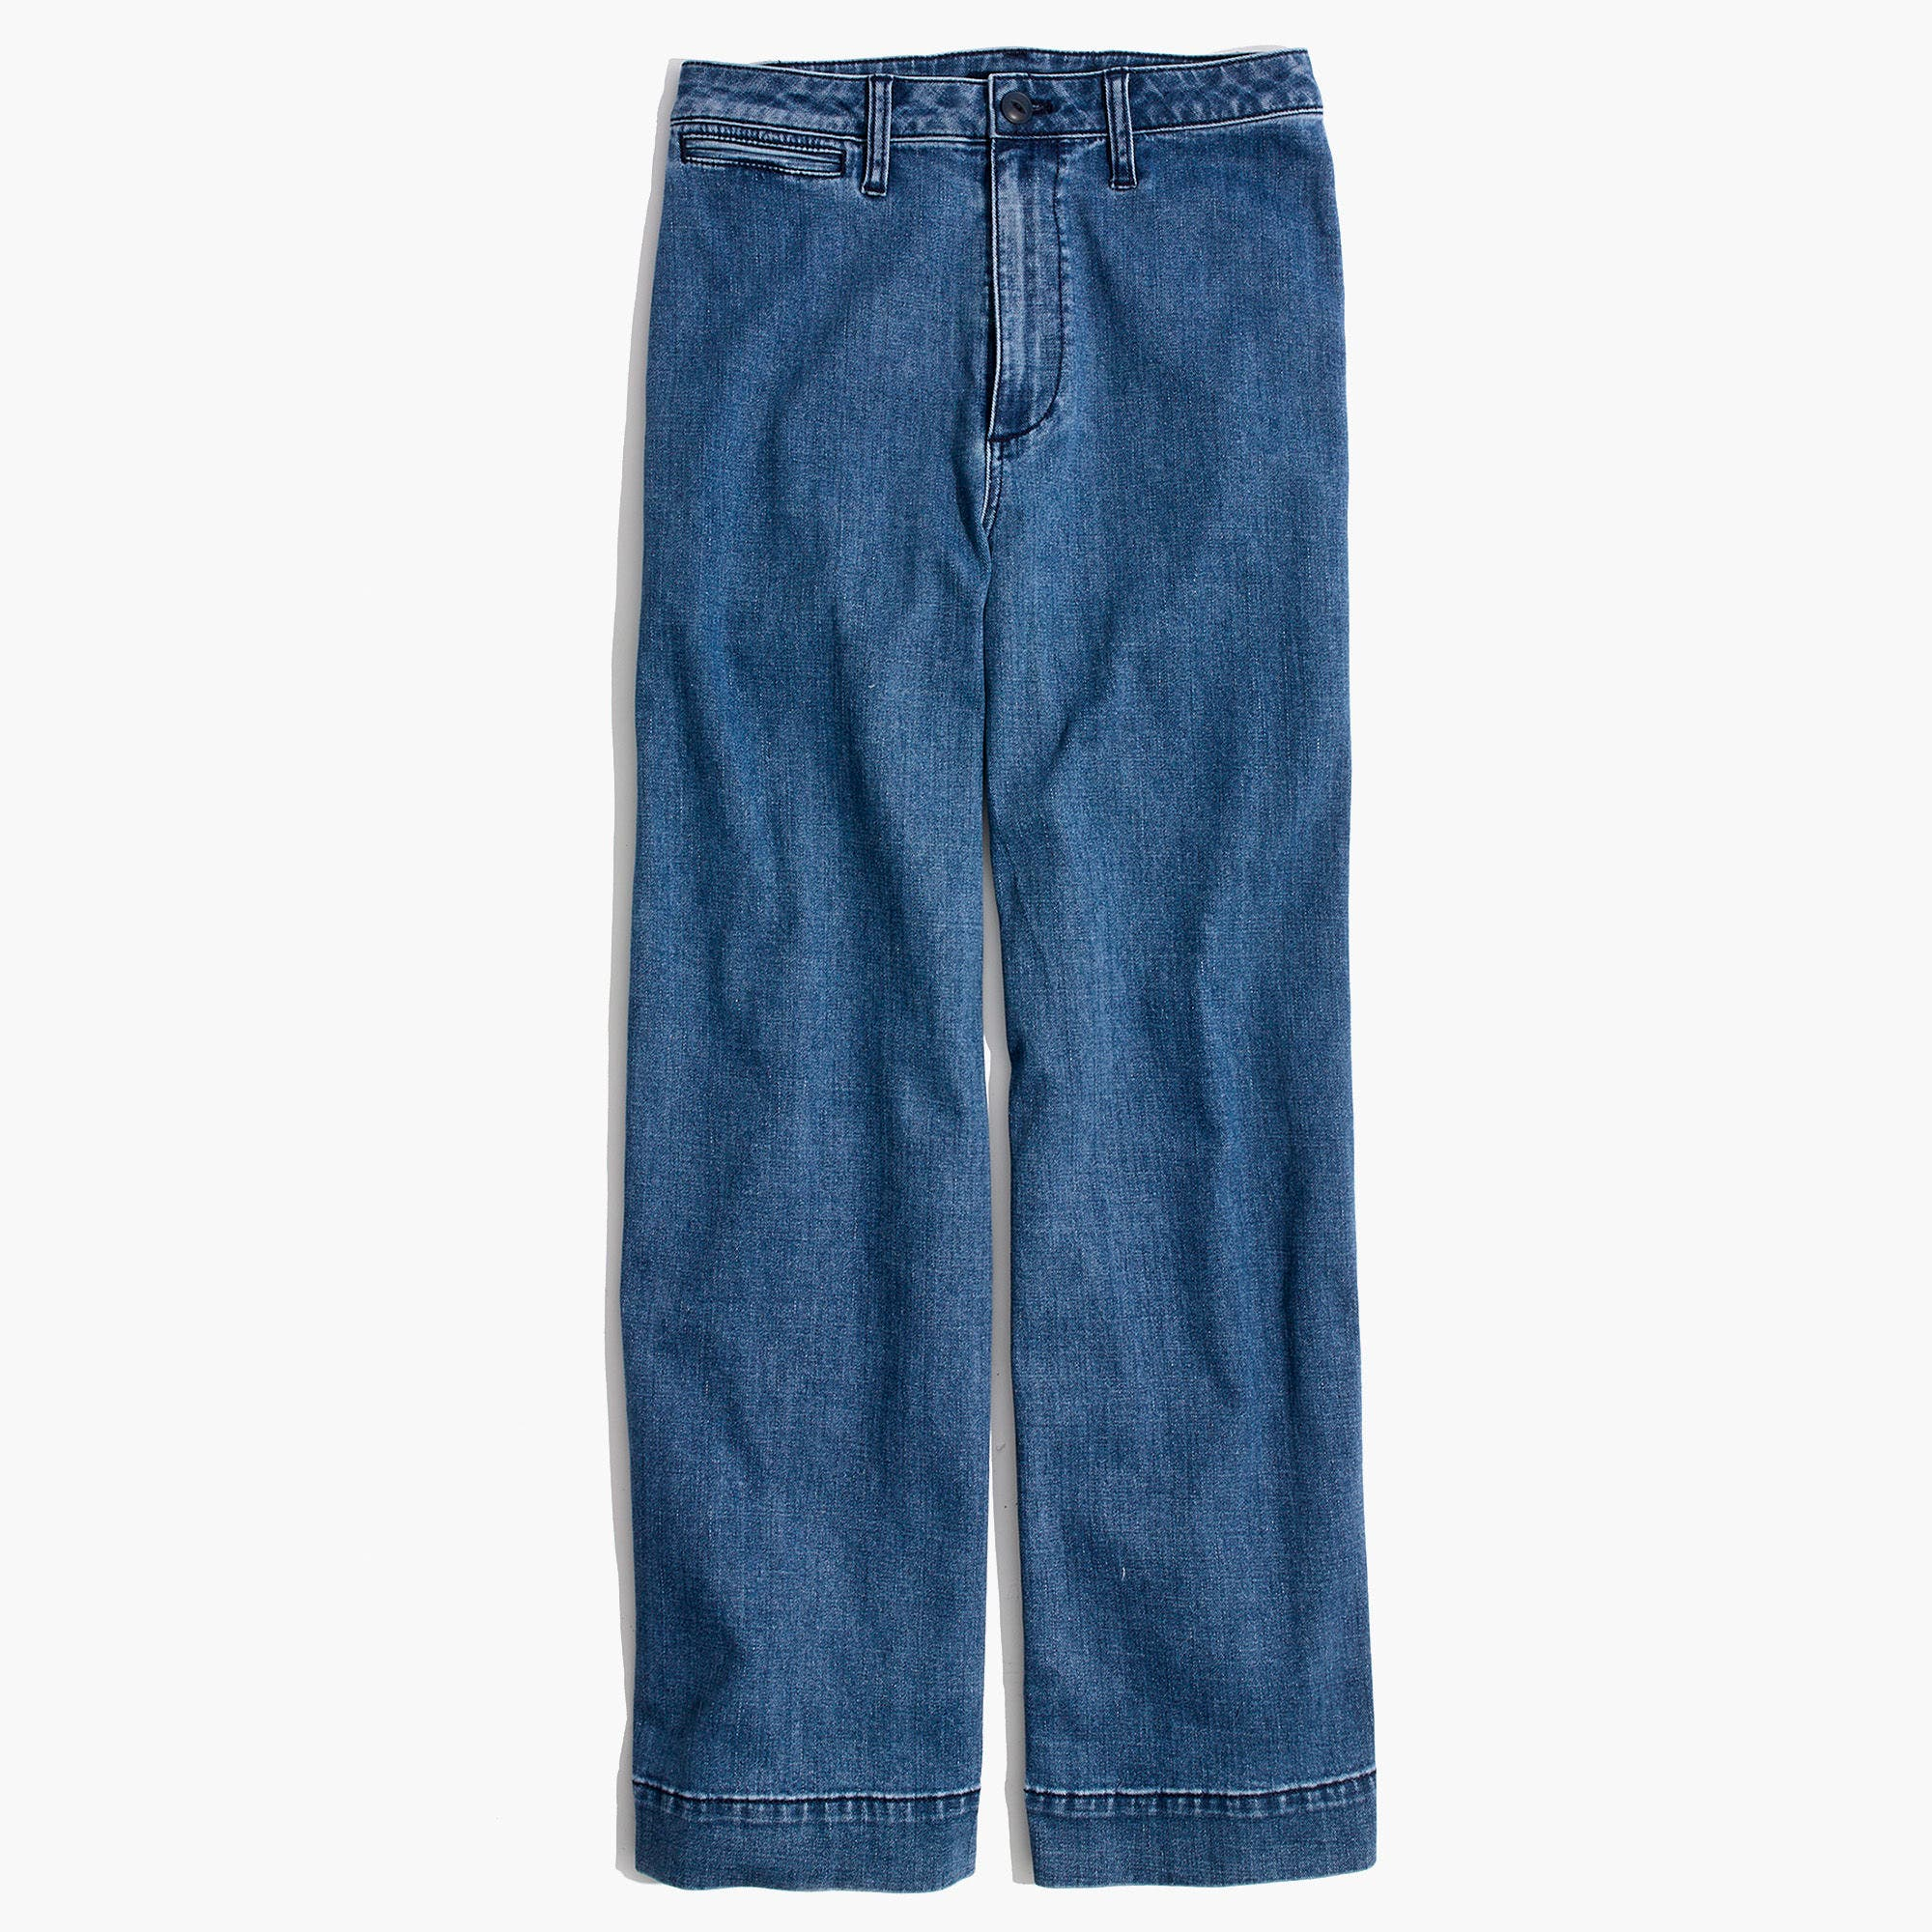 MADEWELL, Emmett Crop Wide Leg Jeans, Alternate thumbnail 4, color, ROSALIE